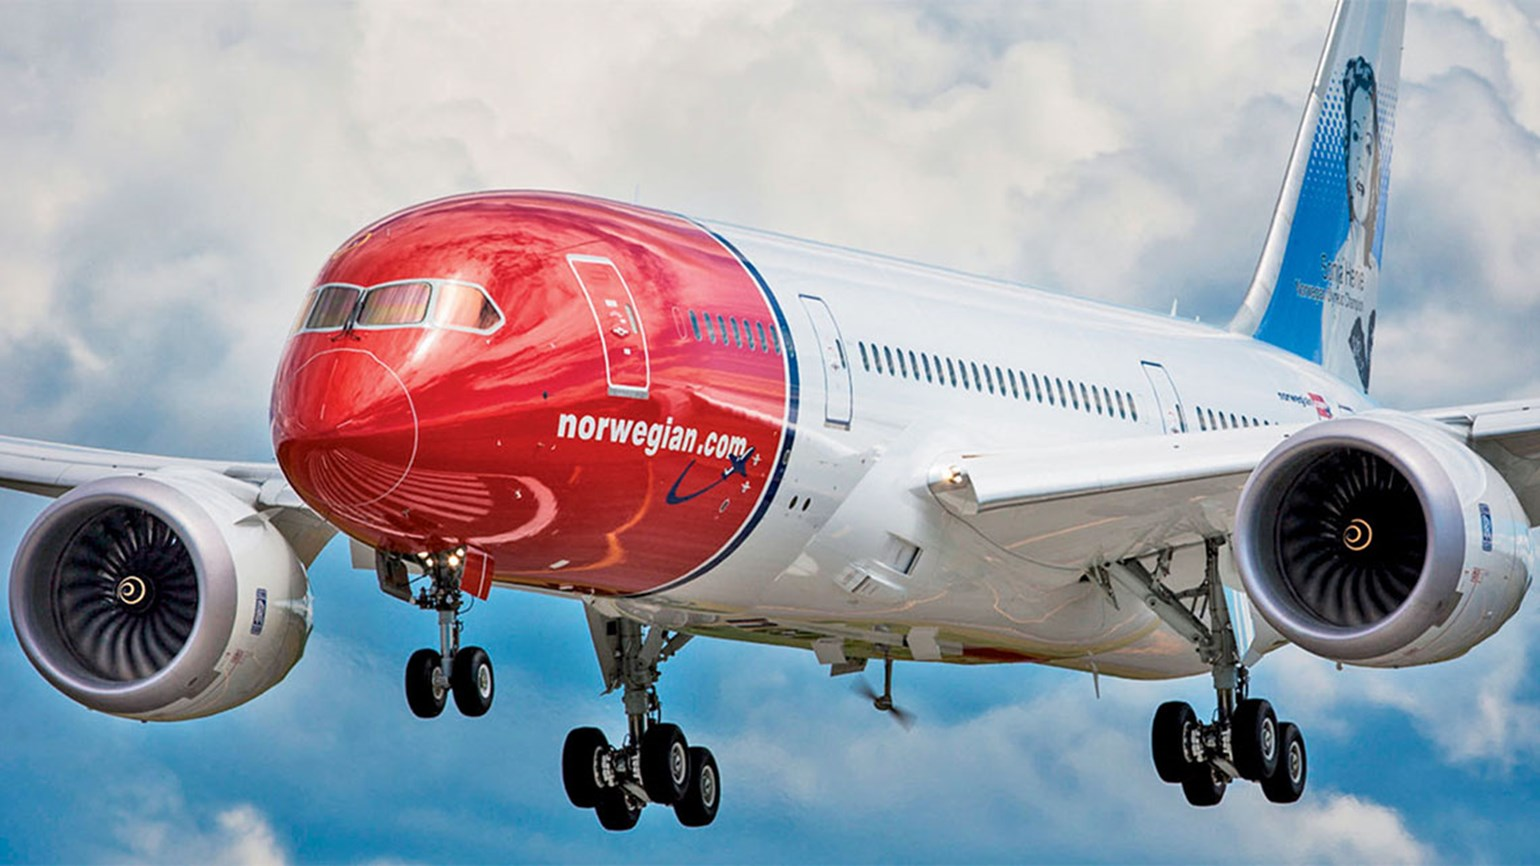 Norwegian Air to serve secondary Northeast airports